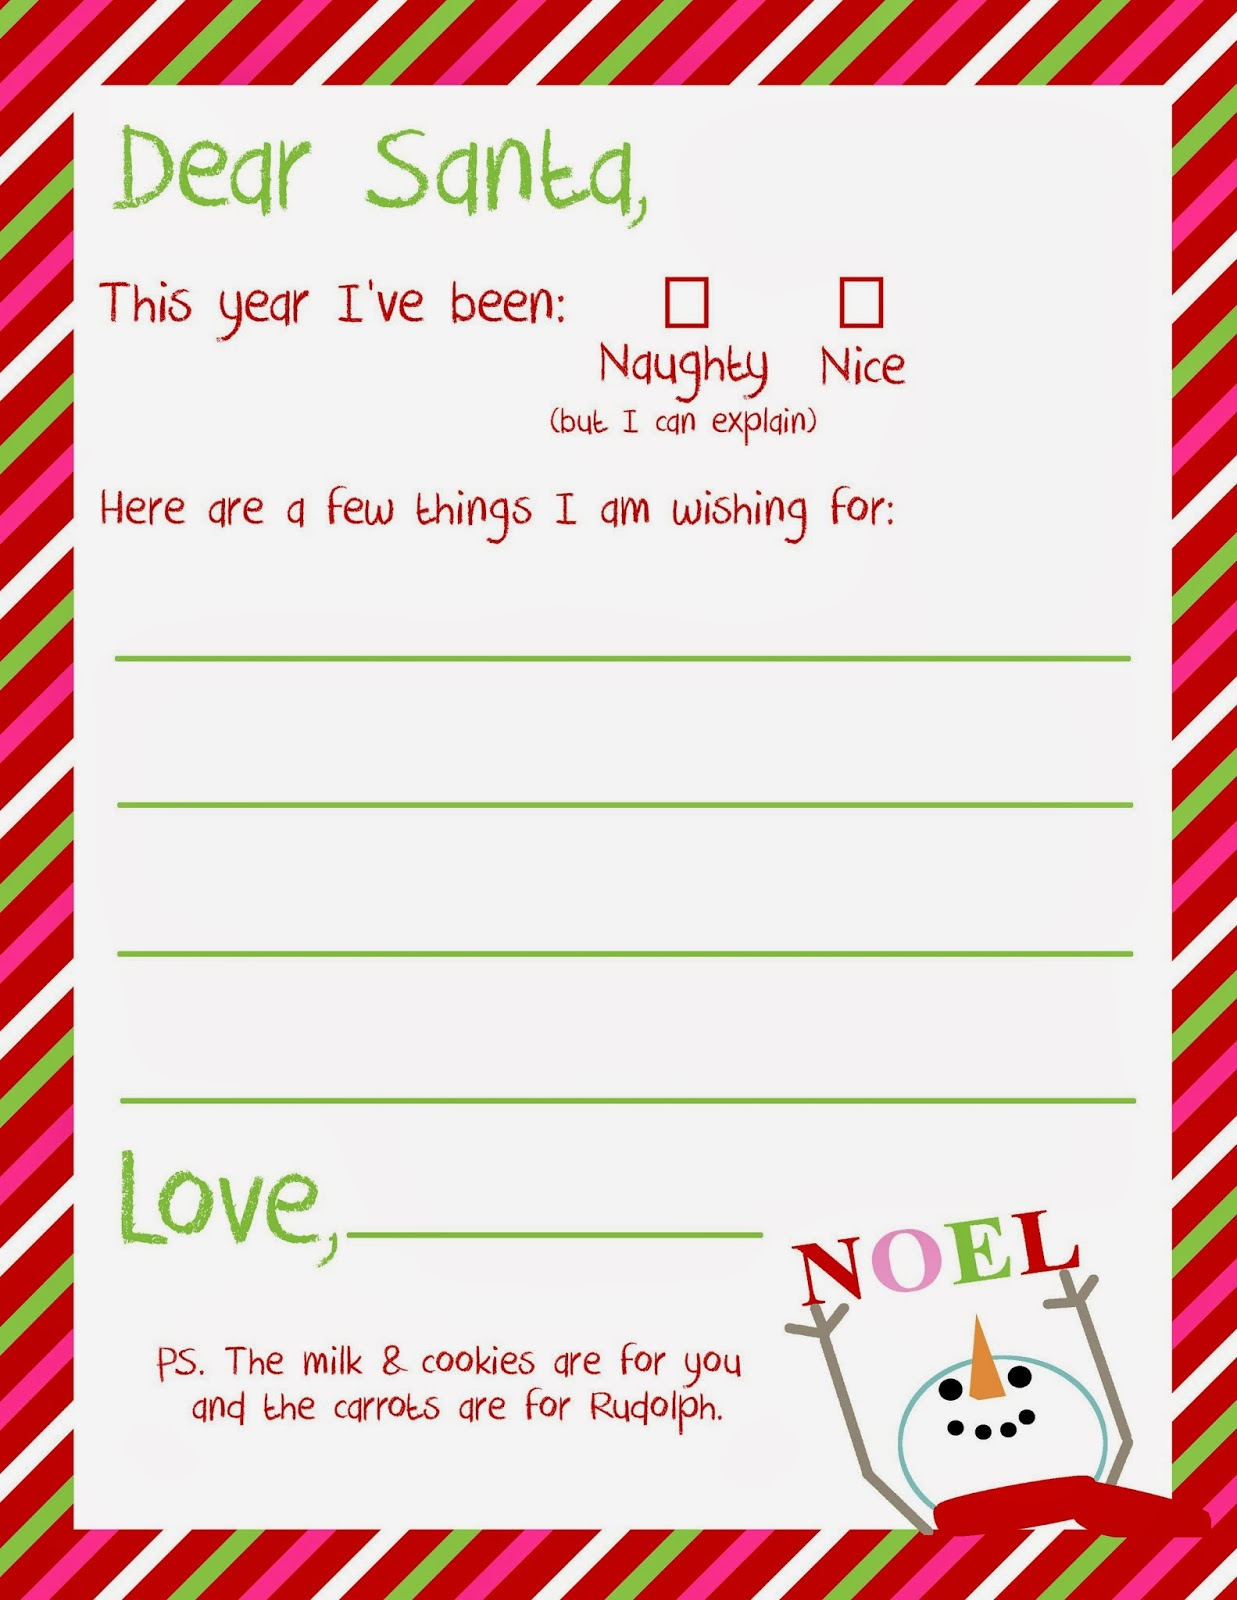 Dear Santa Letter Printable - Delightfully Noted